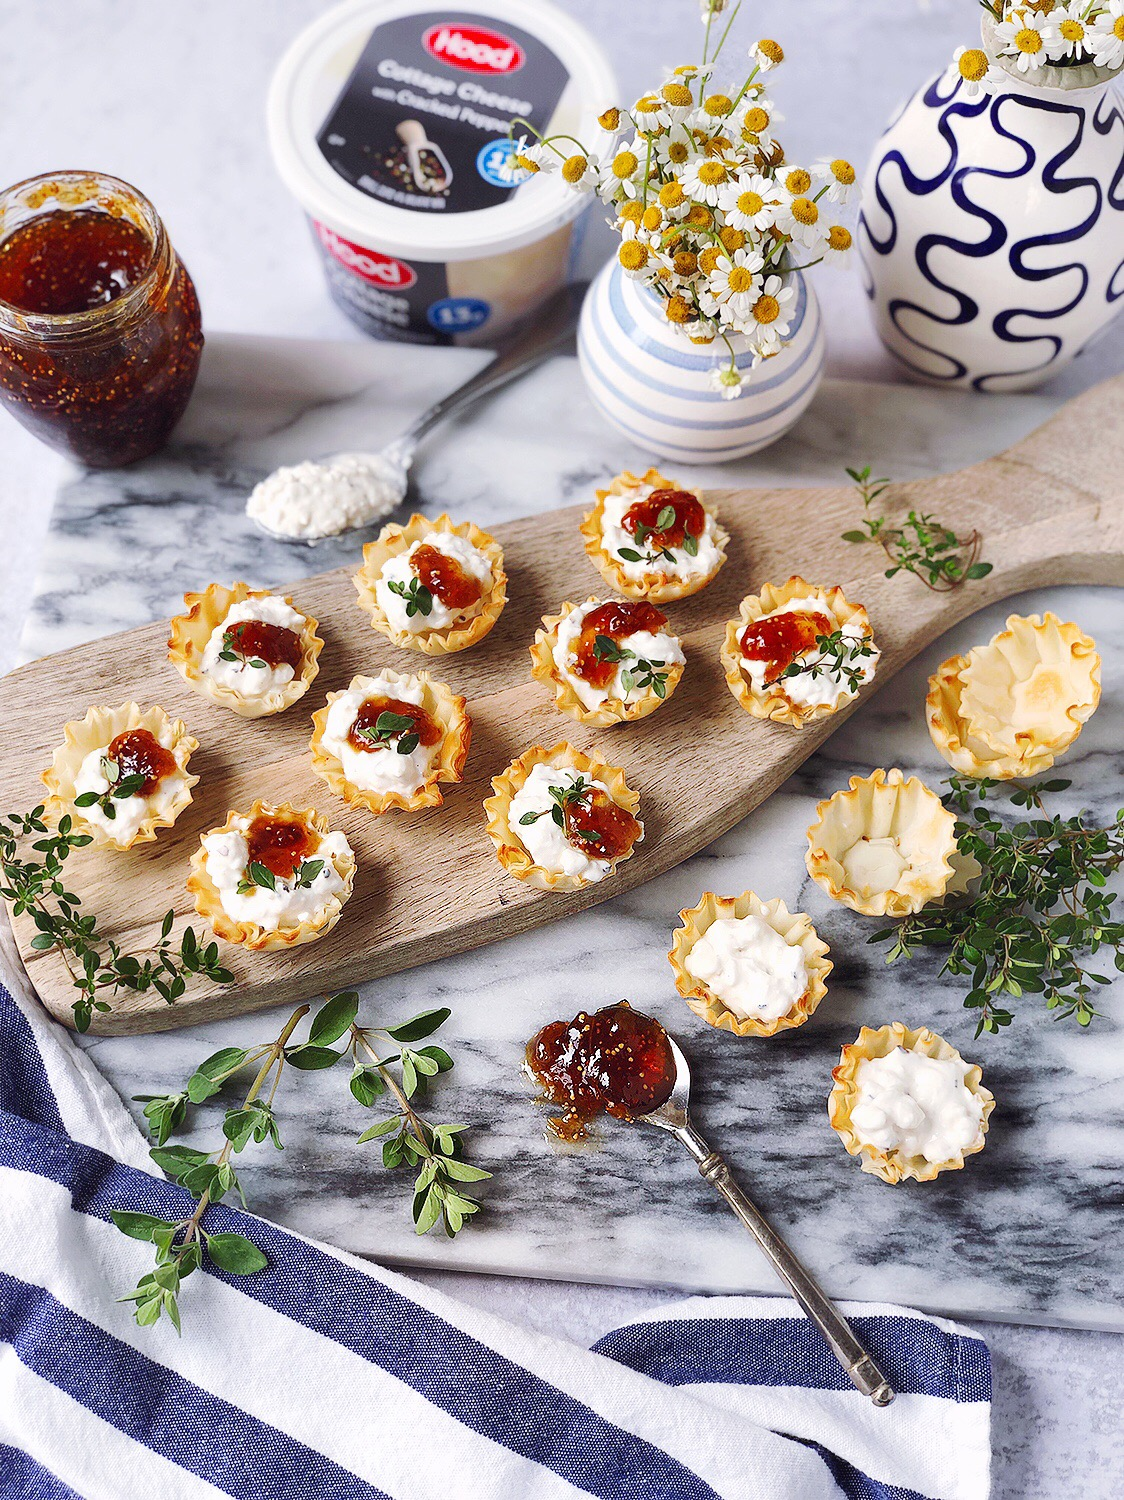 Fabulous Cracked Pepper Cottage Cheese And Jam Filo Cups Home Interior And Landscaping Palasignezvosmurscom